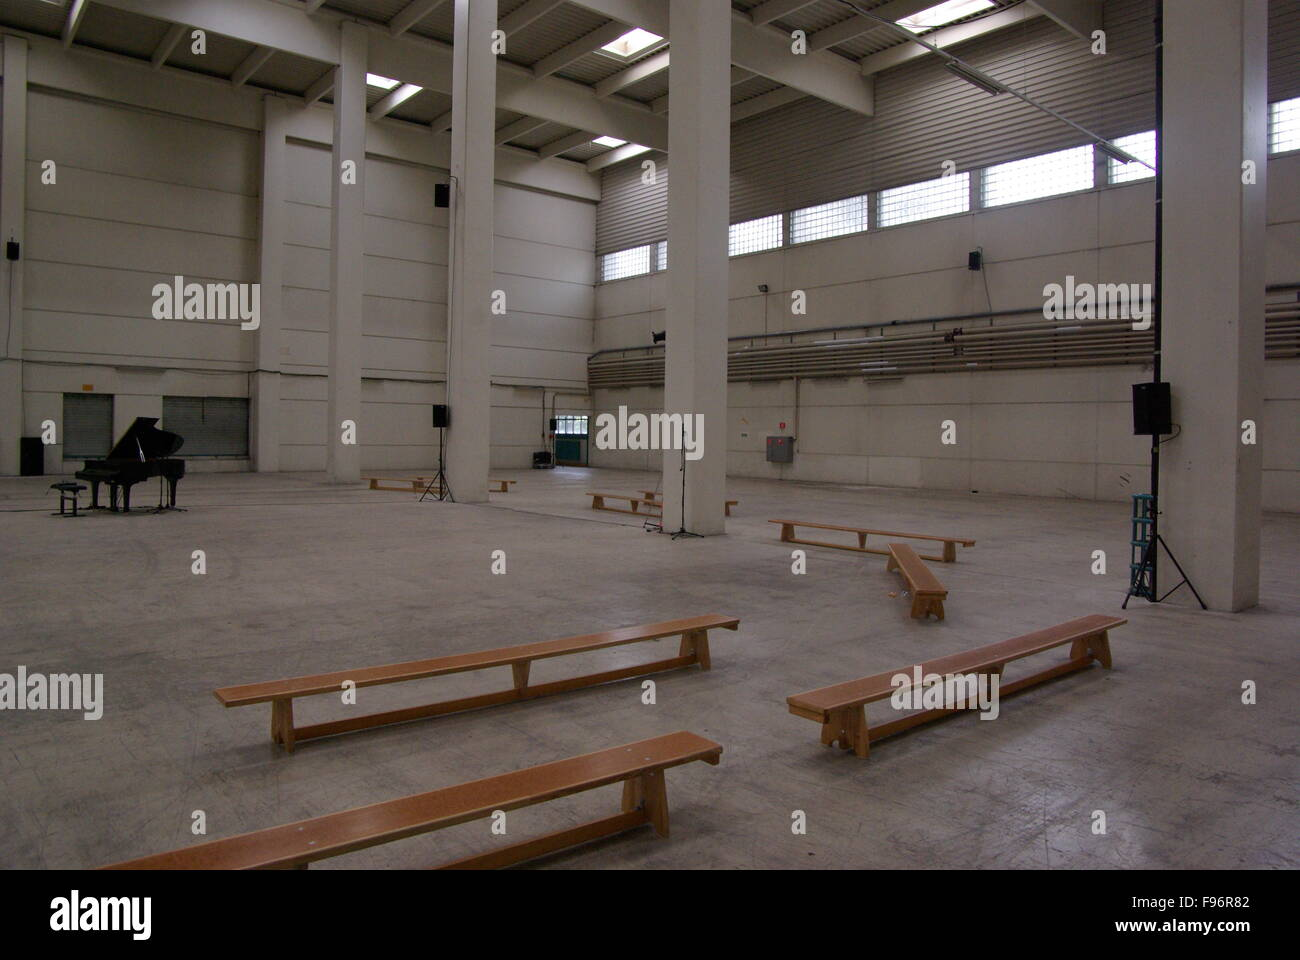 Grand Piano And Wooden Benches In Spacious Empty Hall - Stock Image